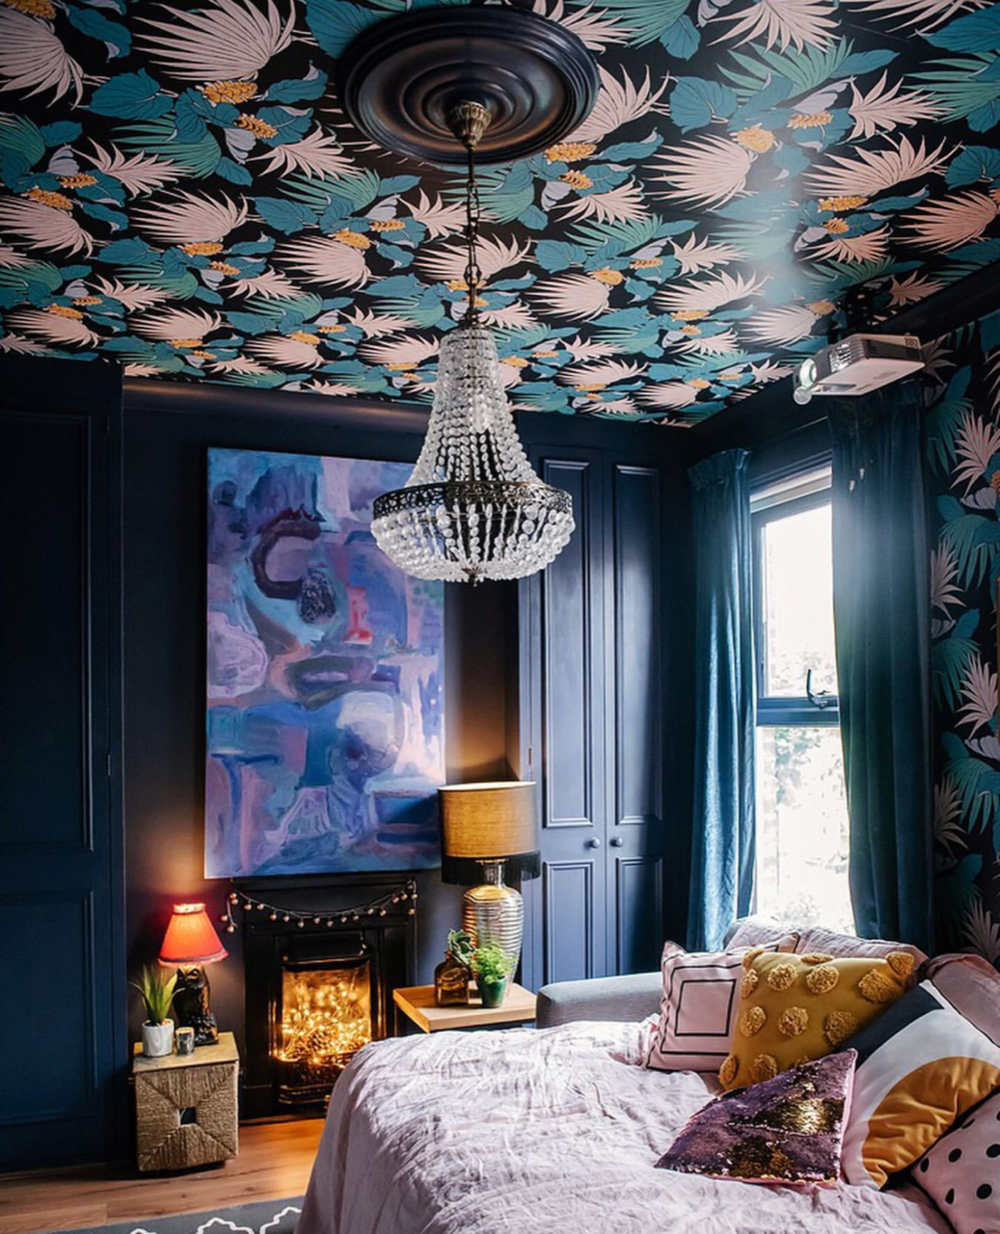 Trends to Try in 2020 The Decorated Ceiling in 2020